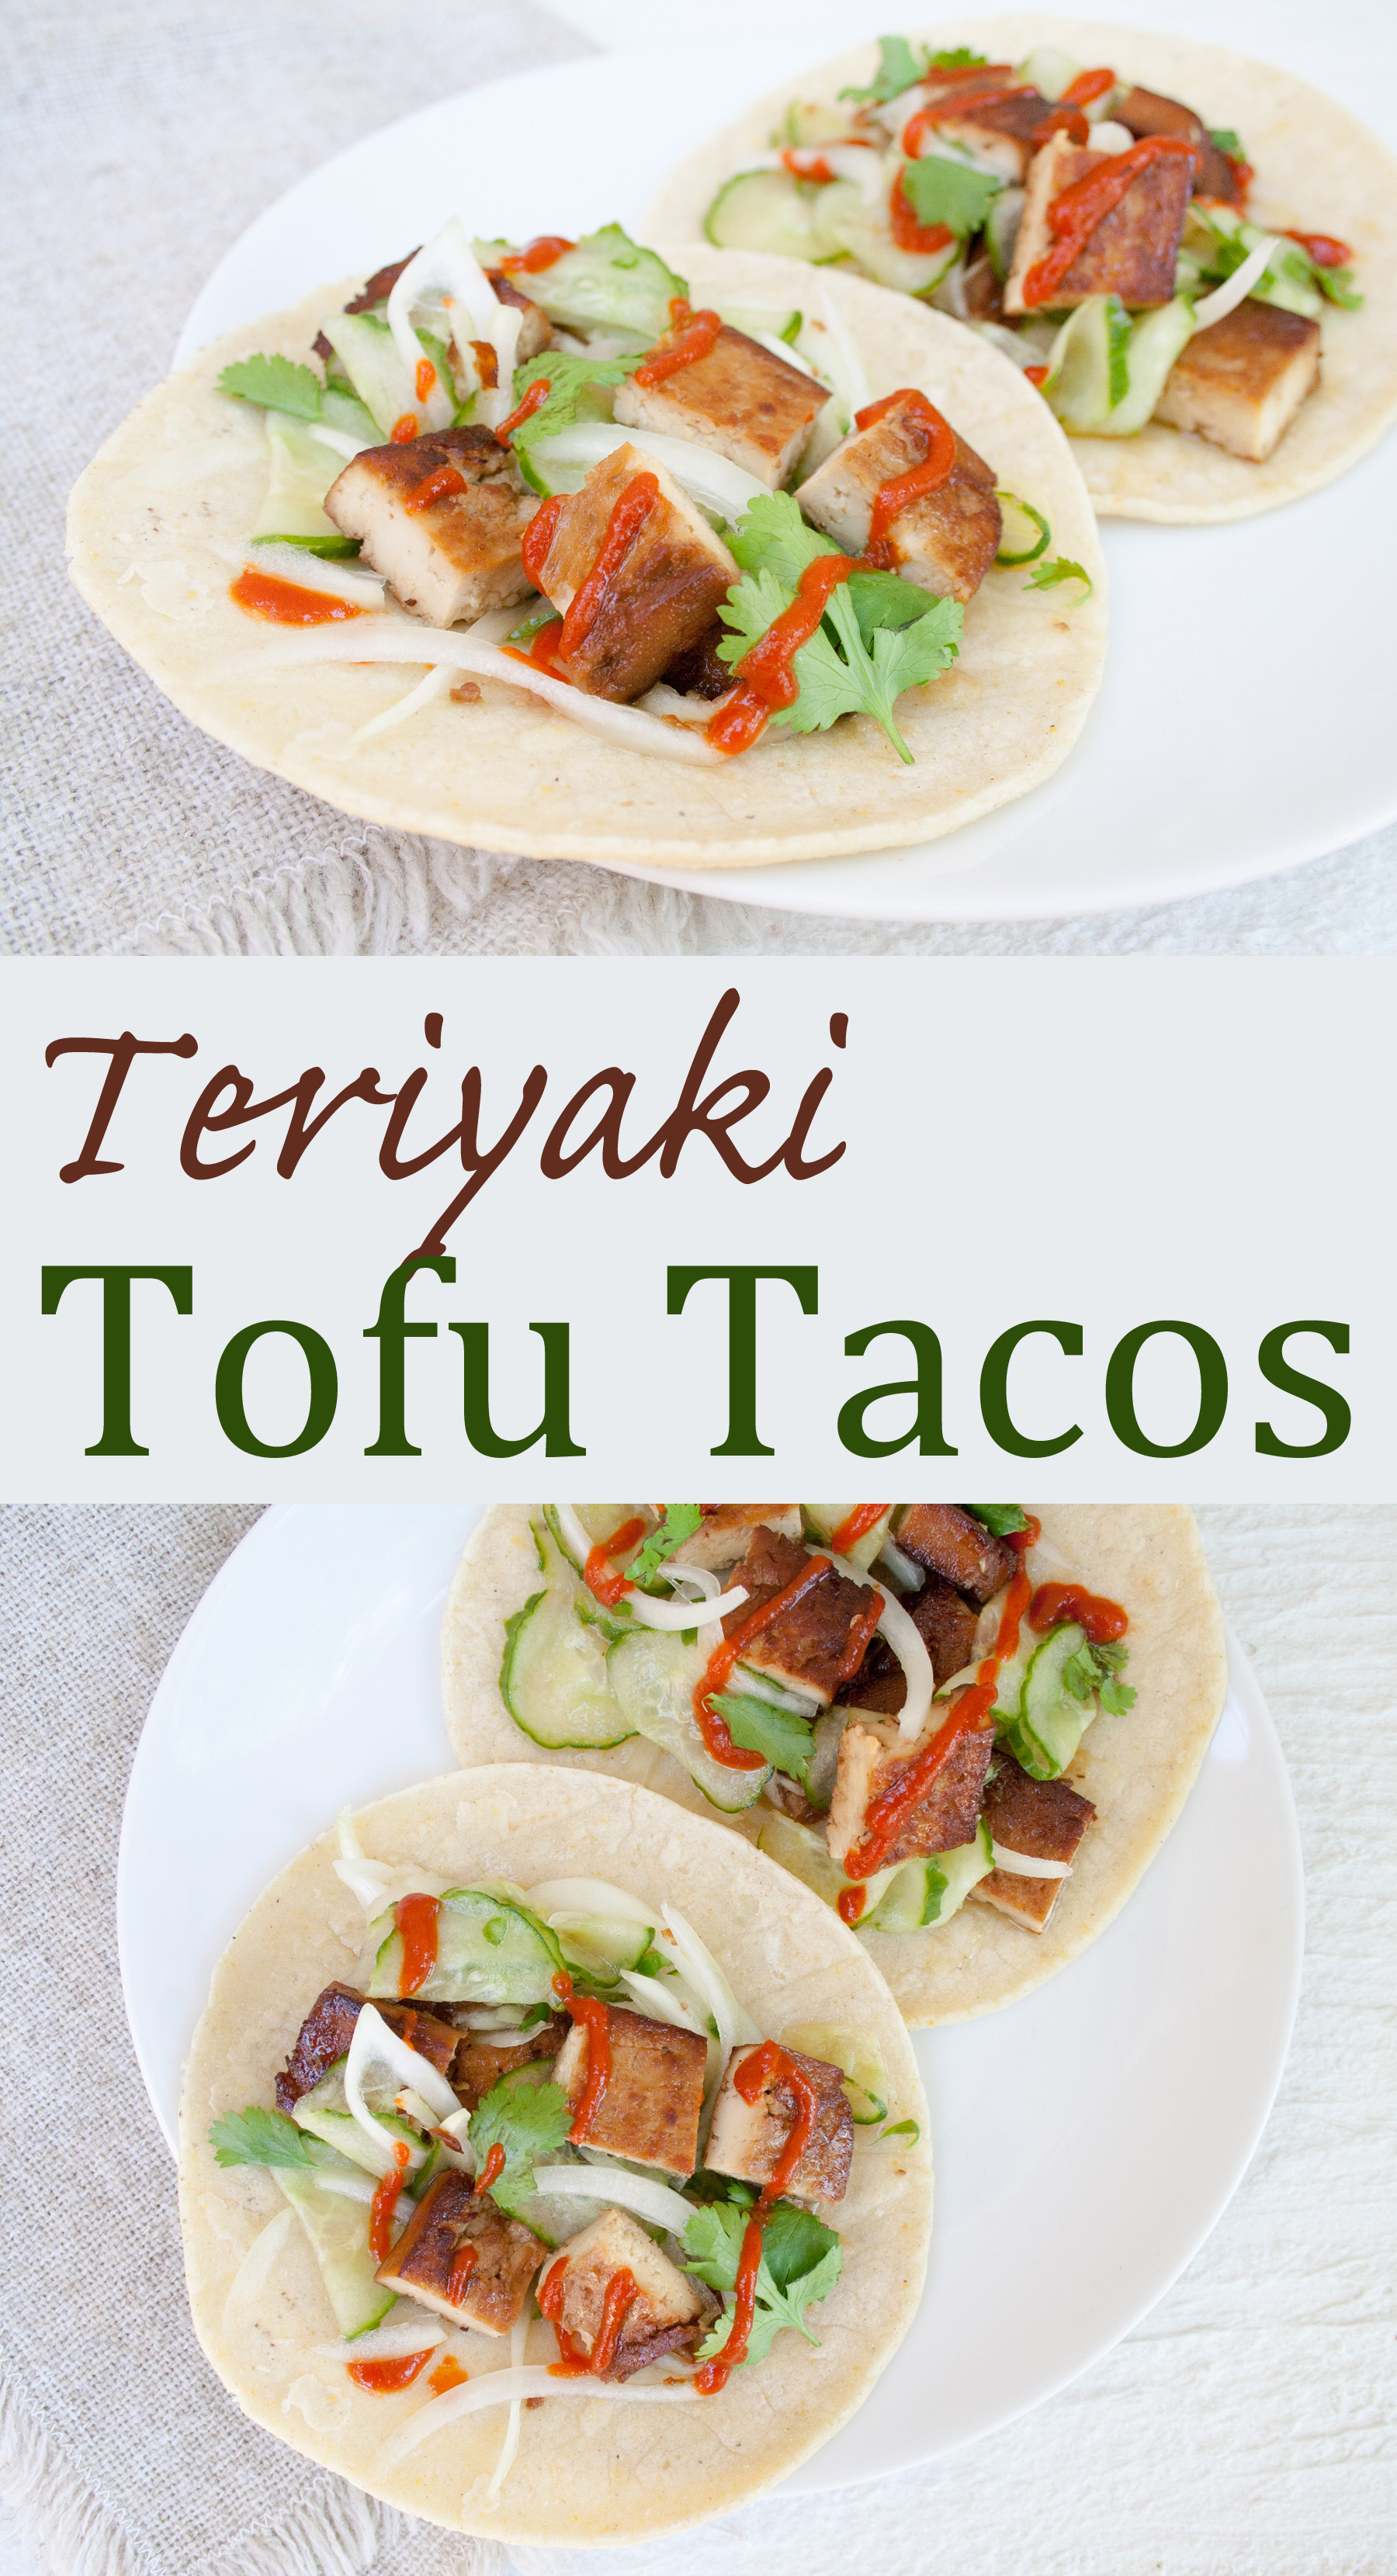 Teriyaki Tofu Tacos collage photo with text.